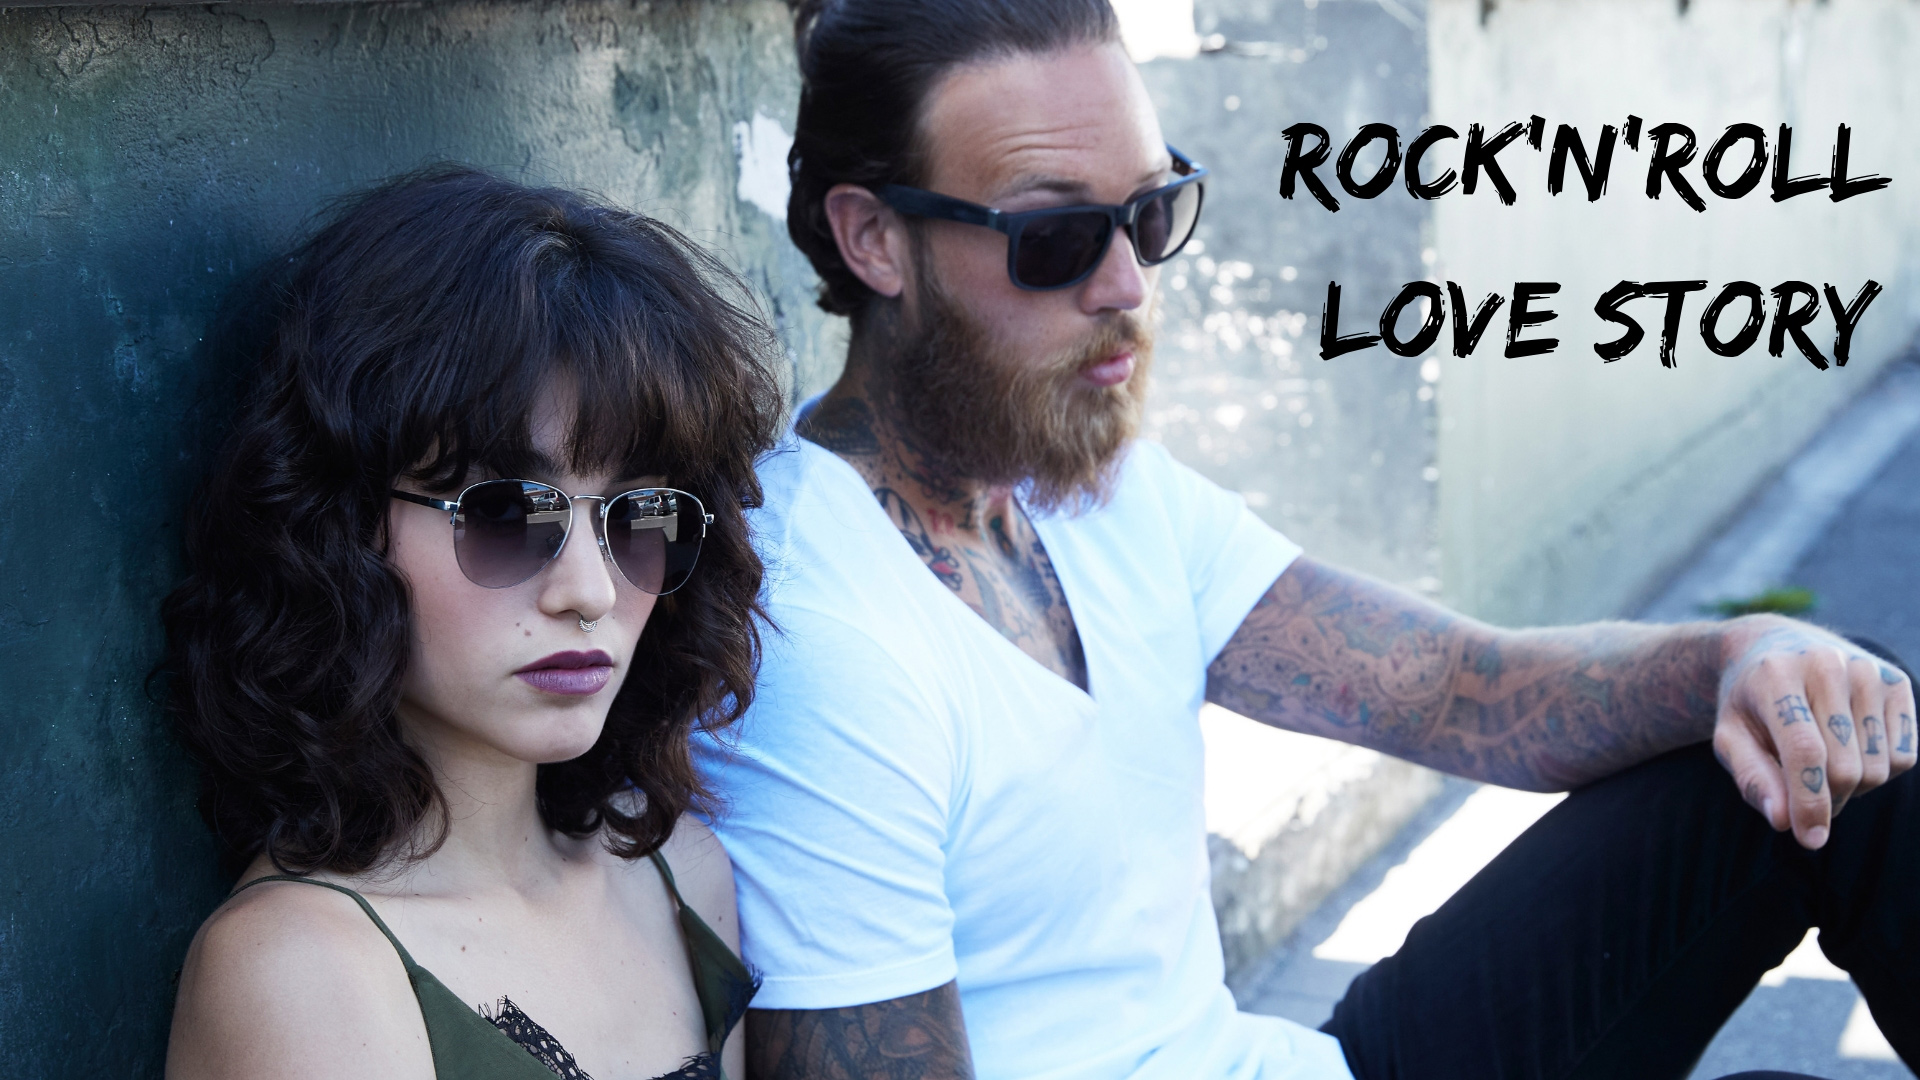 header image sunglasses lookbook rock and roll love story